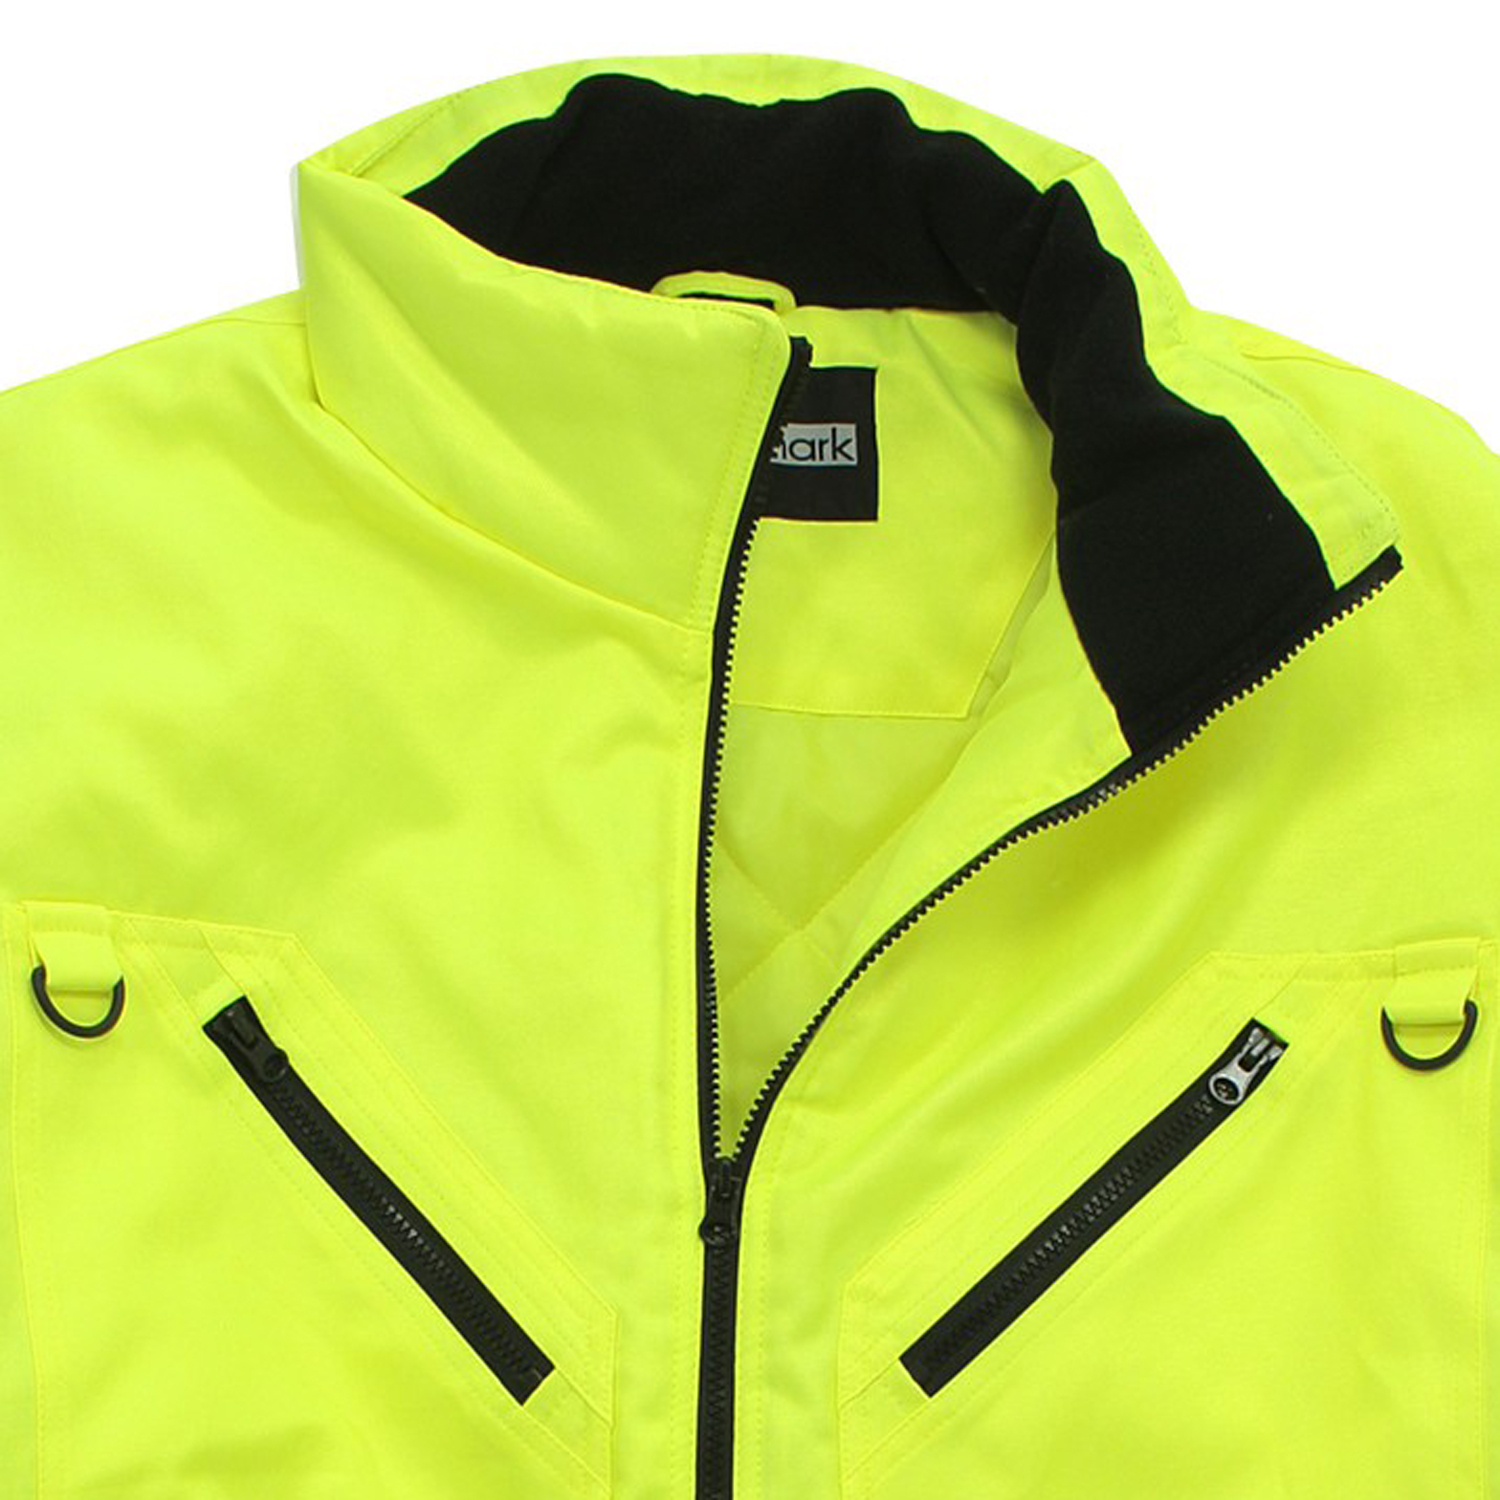 Detail Image to Working jacket in day-glo yellow by marc&mark in extra large sizes up to 10XL